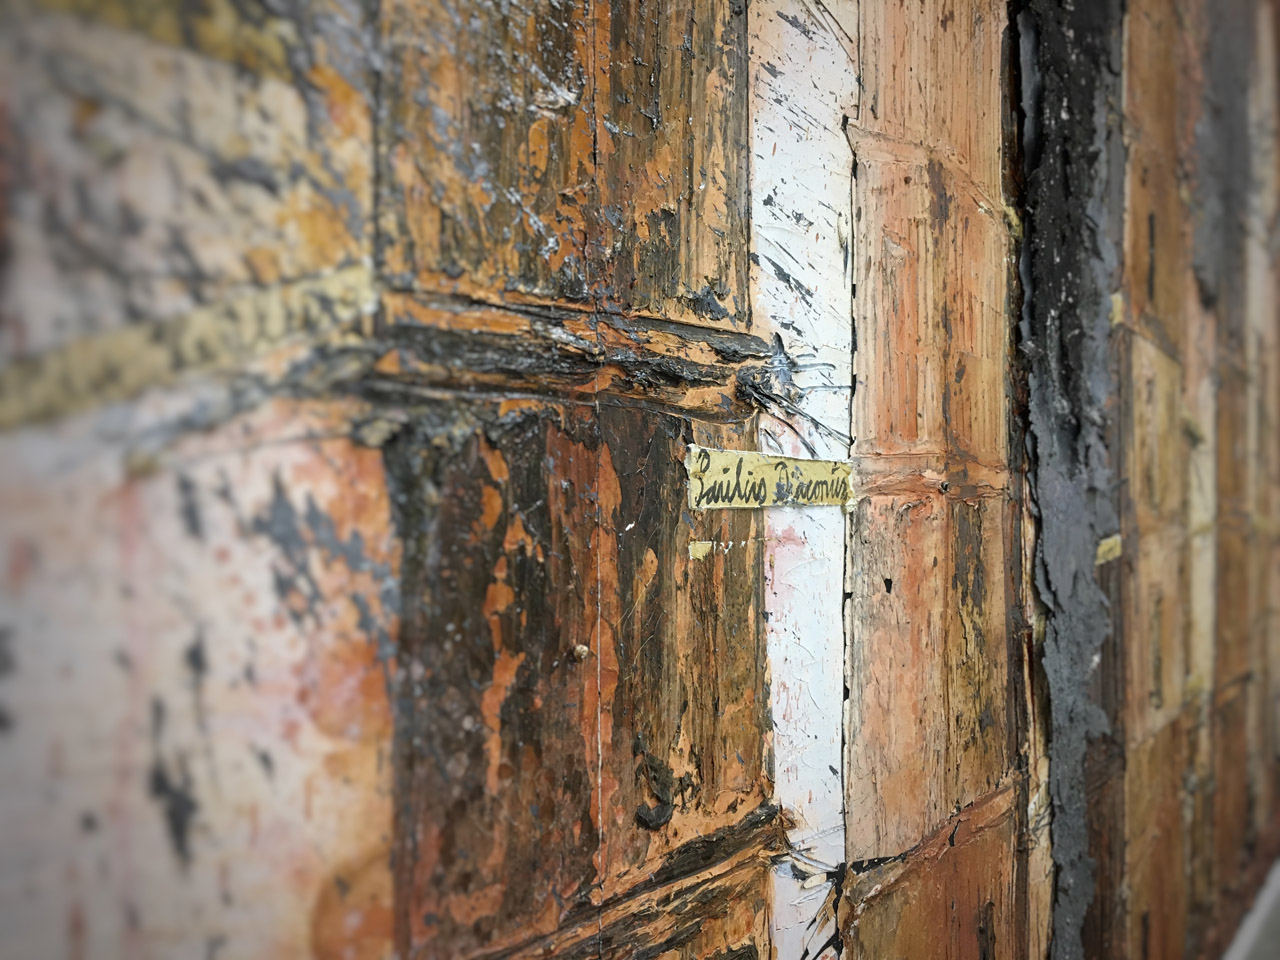 01_AnselmKiefer_PaintDetail_resized